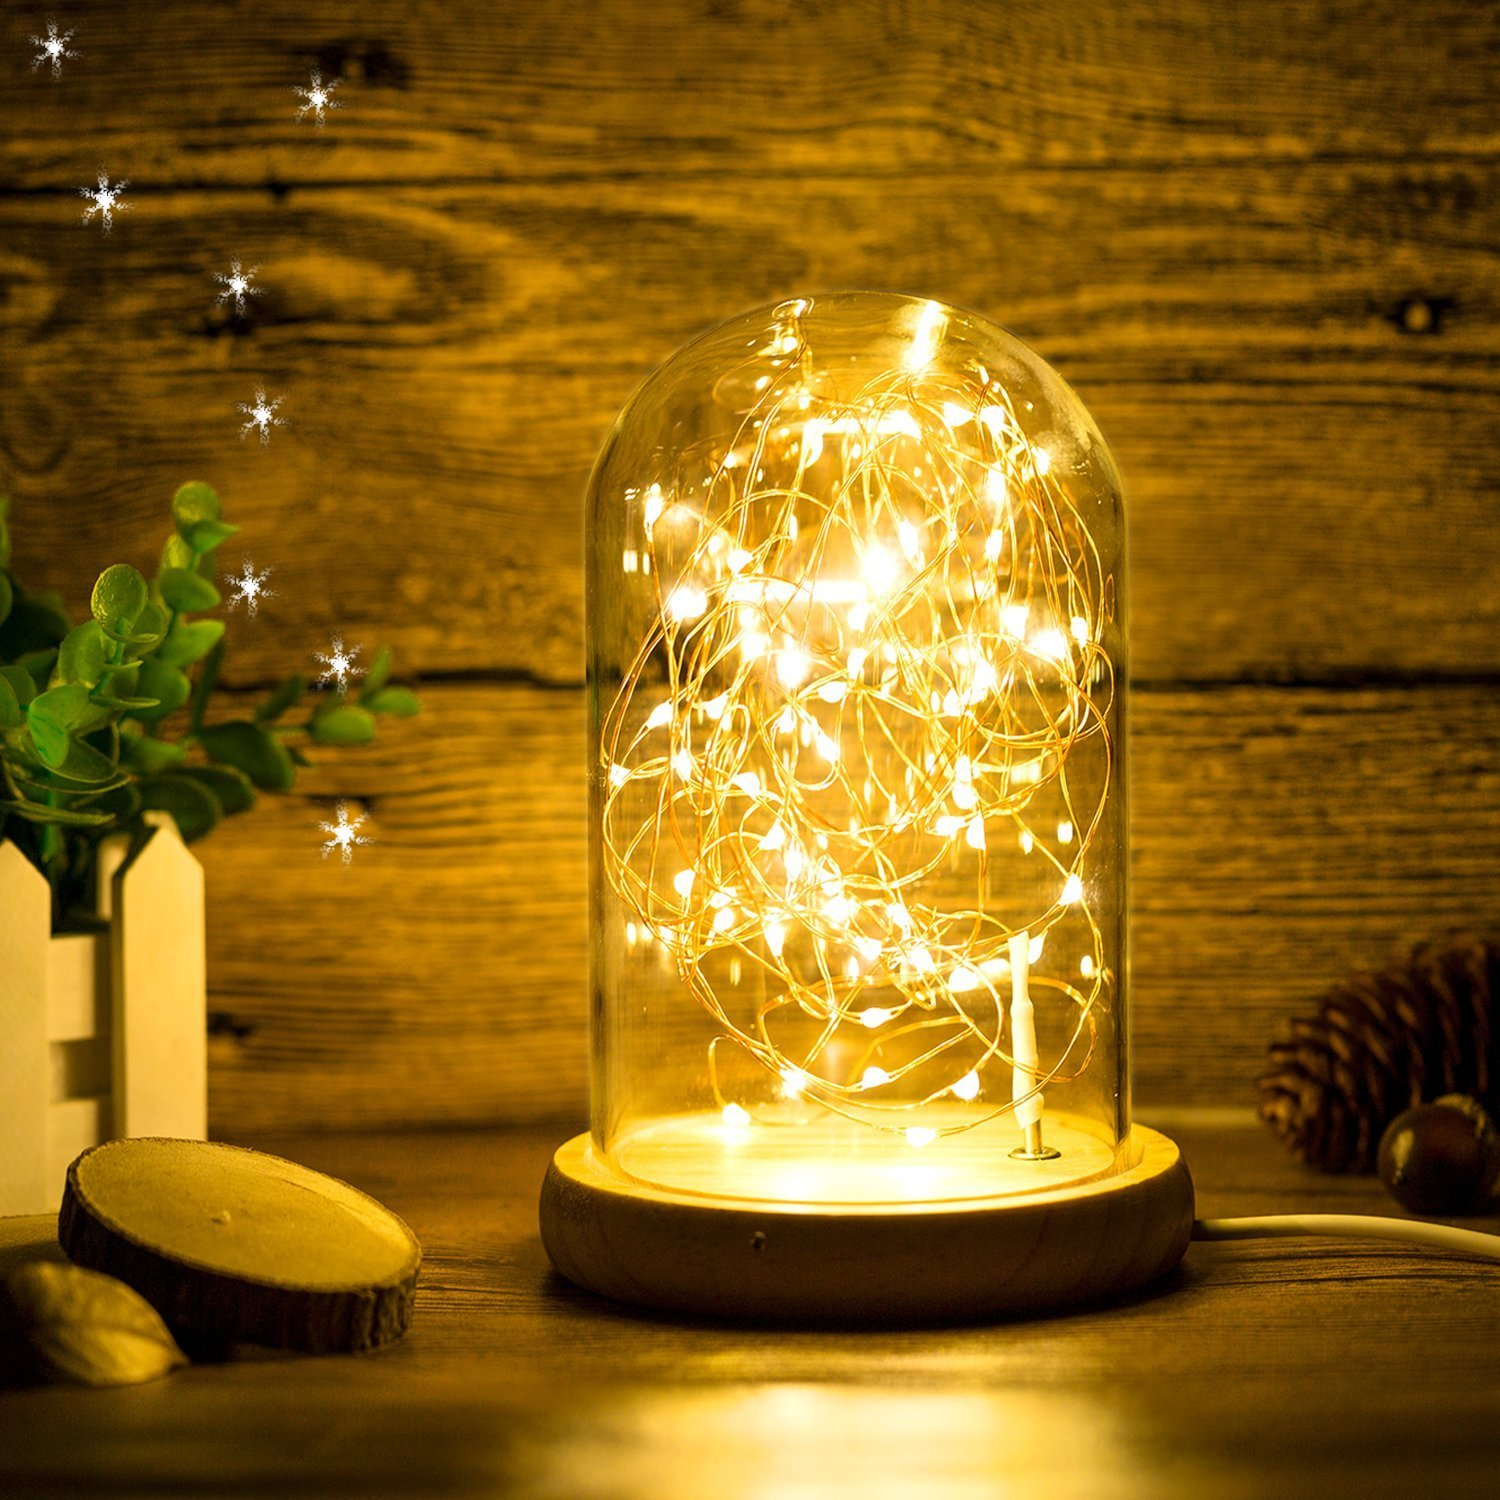 Glass Dome Bedside Table Lamp Bell Jar Display Dome Bamboo Base String USB LED Decorative Lamp with LED Warm Fairy Starry String Lights ideal for Decoration Anywhere By Erosom.(Warm White) by Erosom (Image #6)